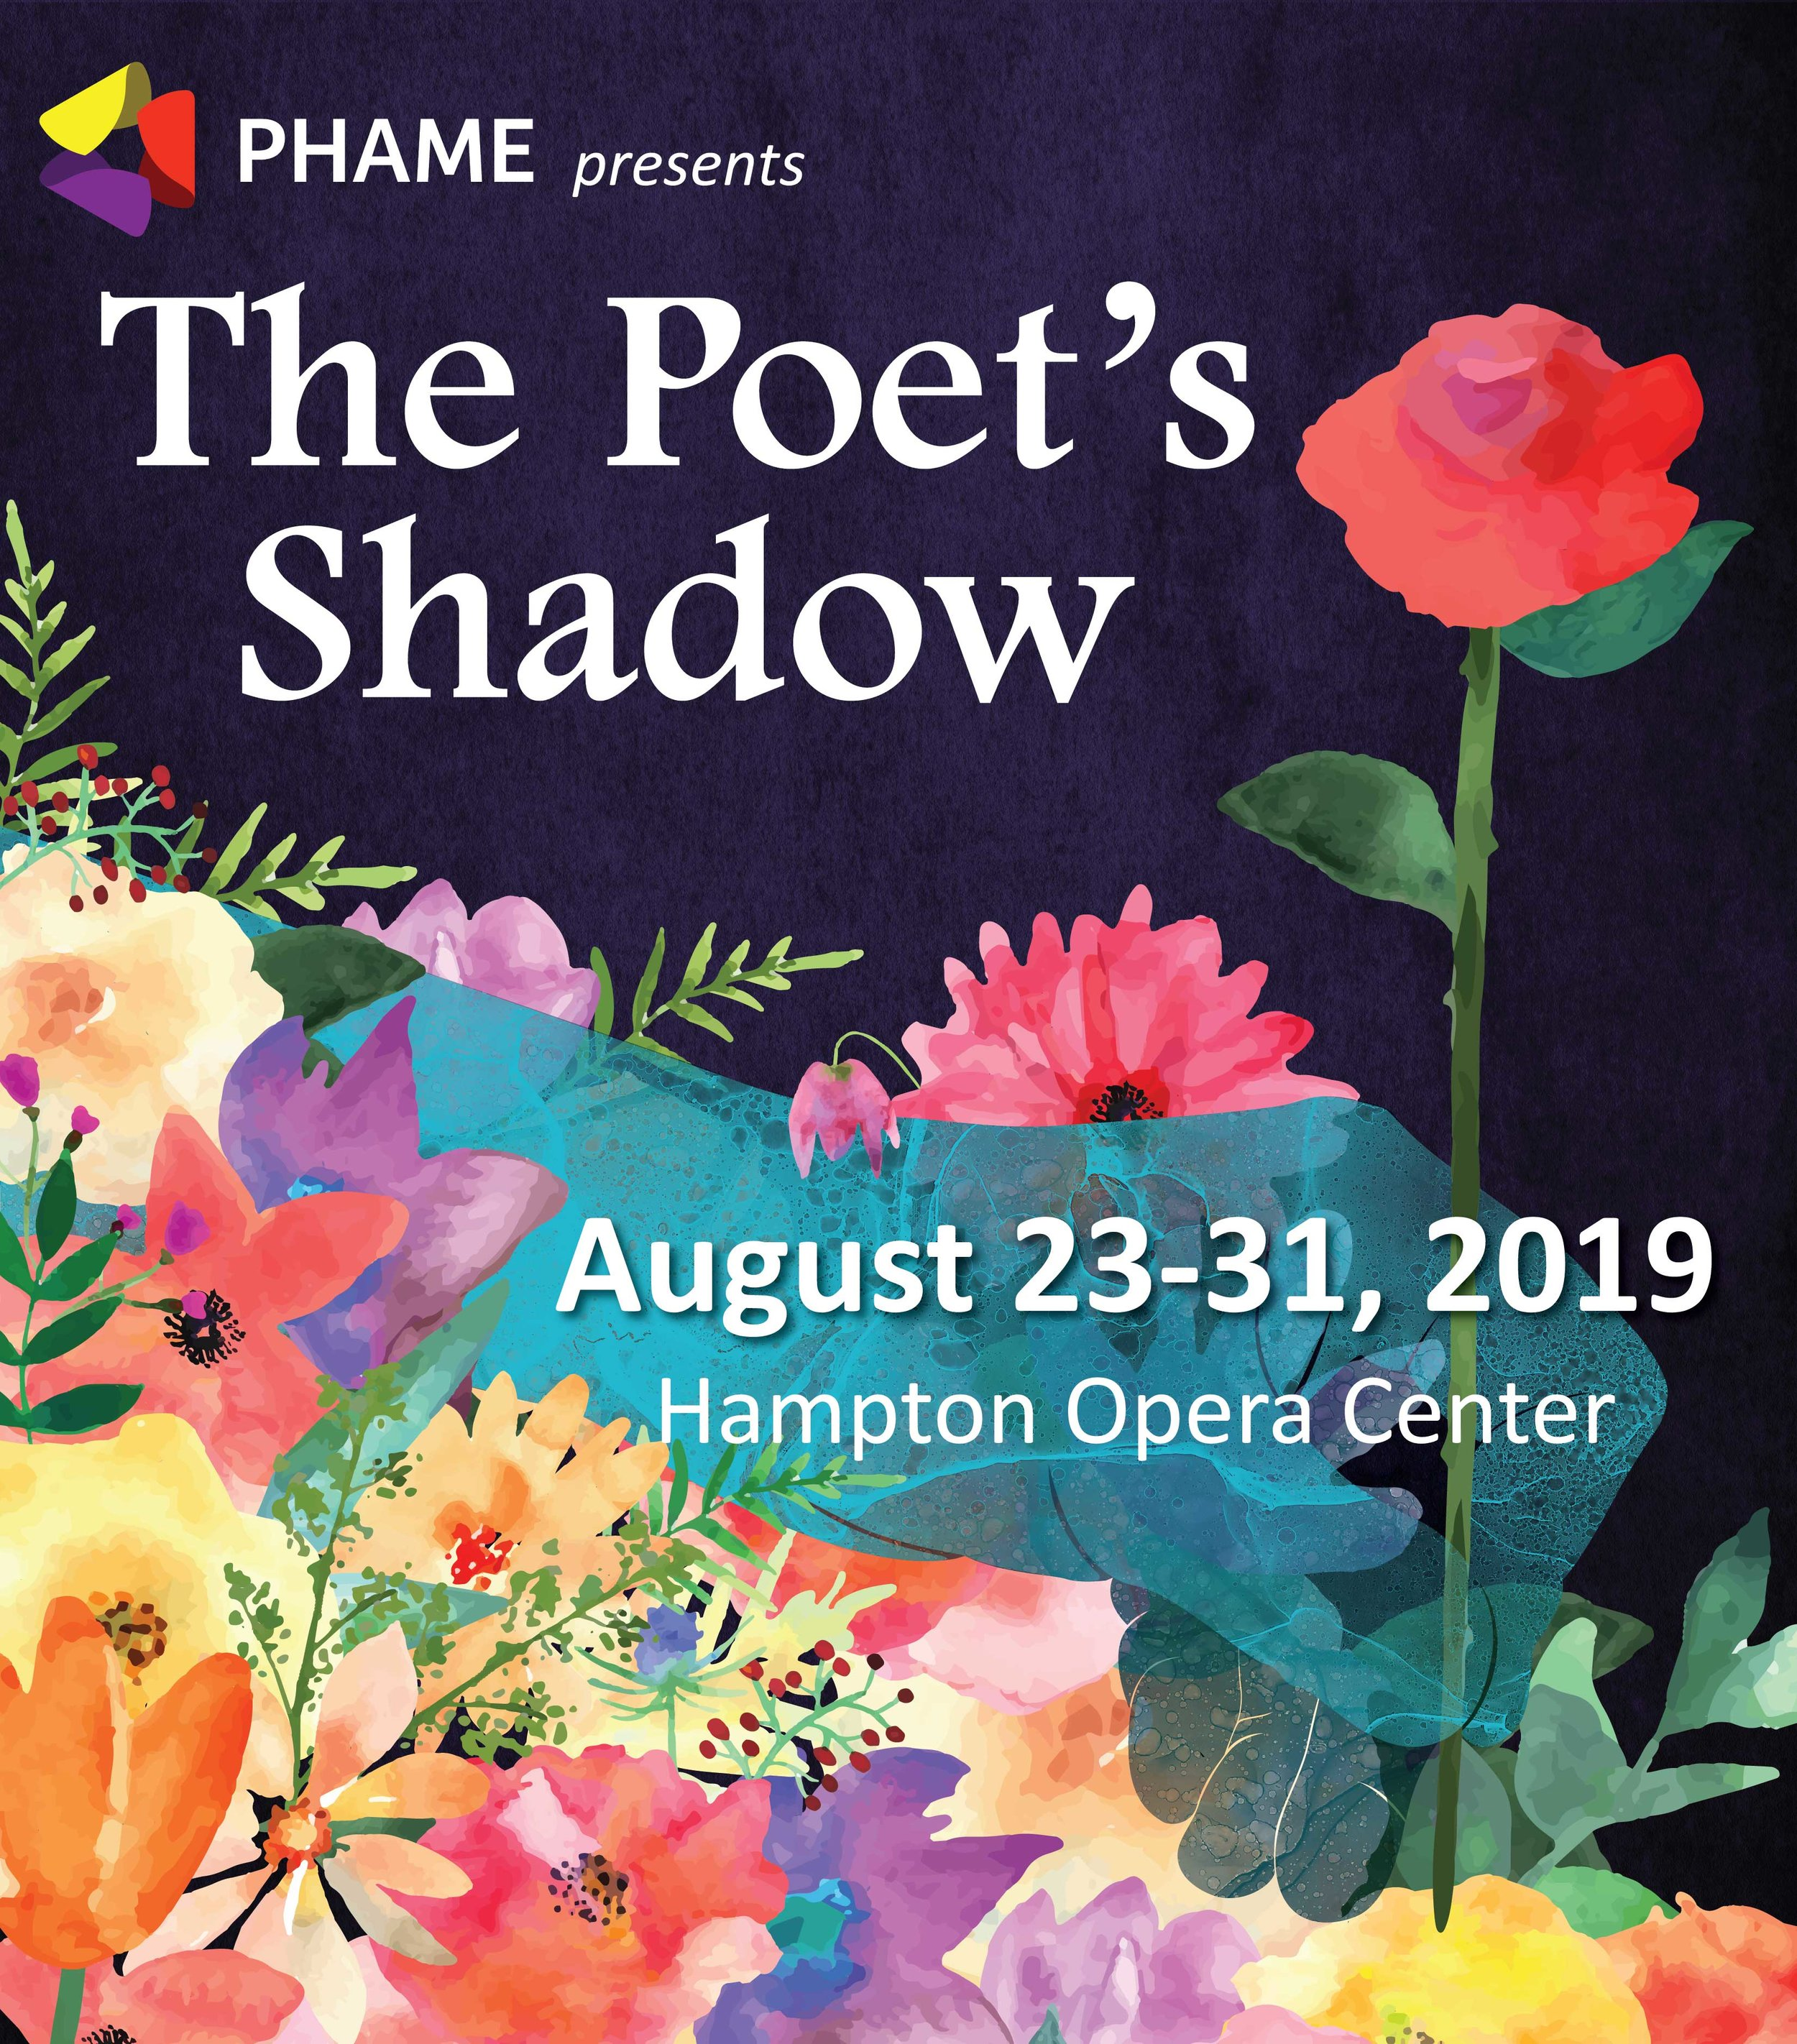 Watercolor style Illustration of a hand holding a rose like a pen with more flowers and the words PHAME presents The Poet's Shadow August 23-31, 2019 Hampton Opera Center